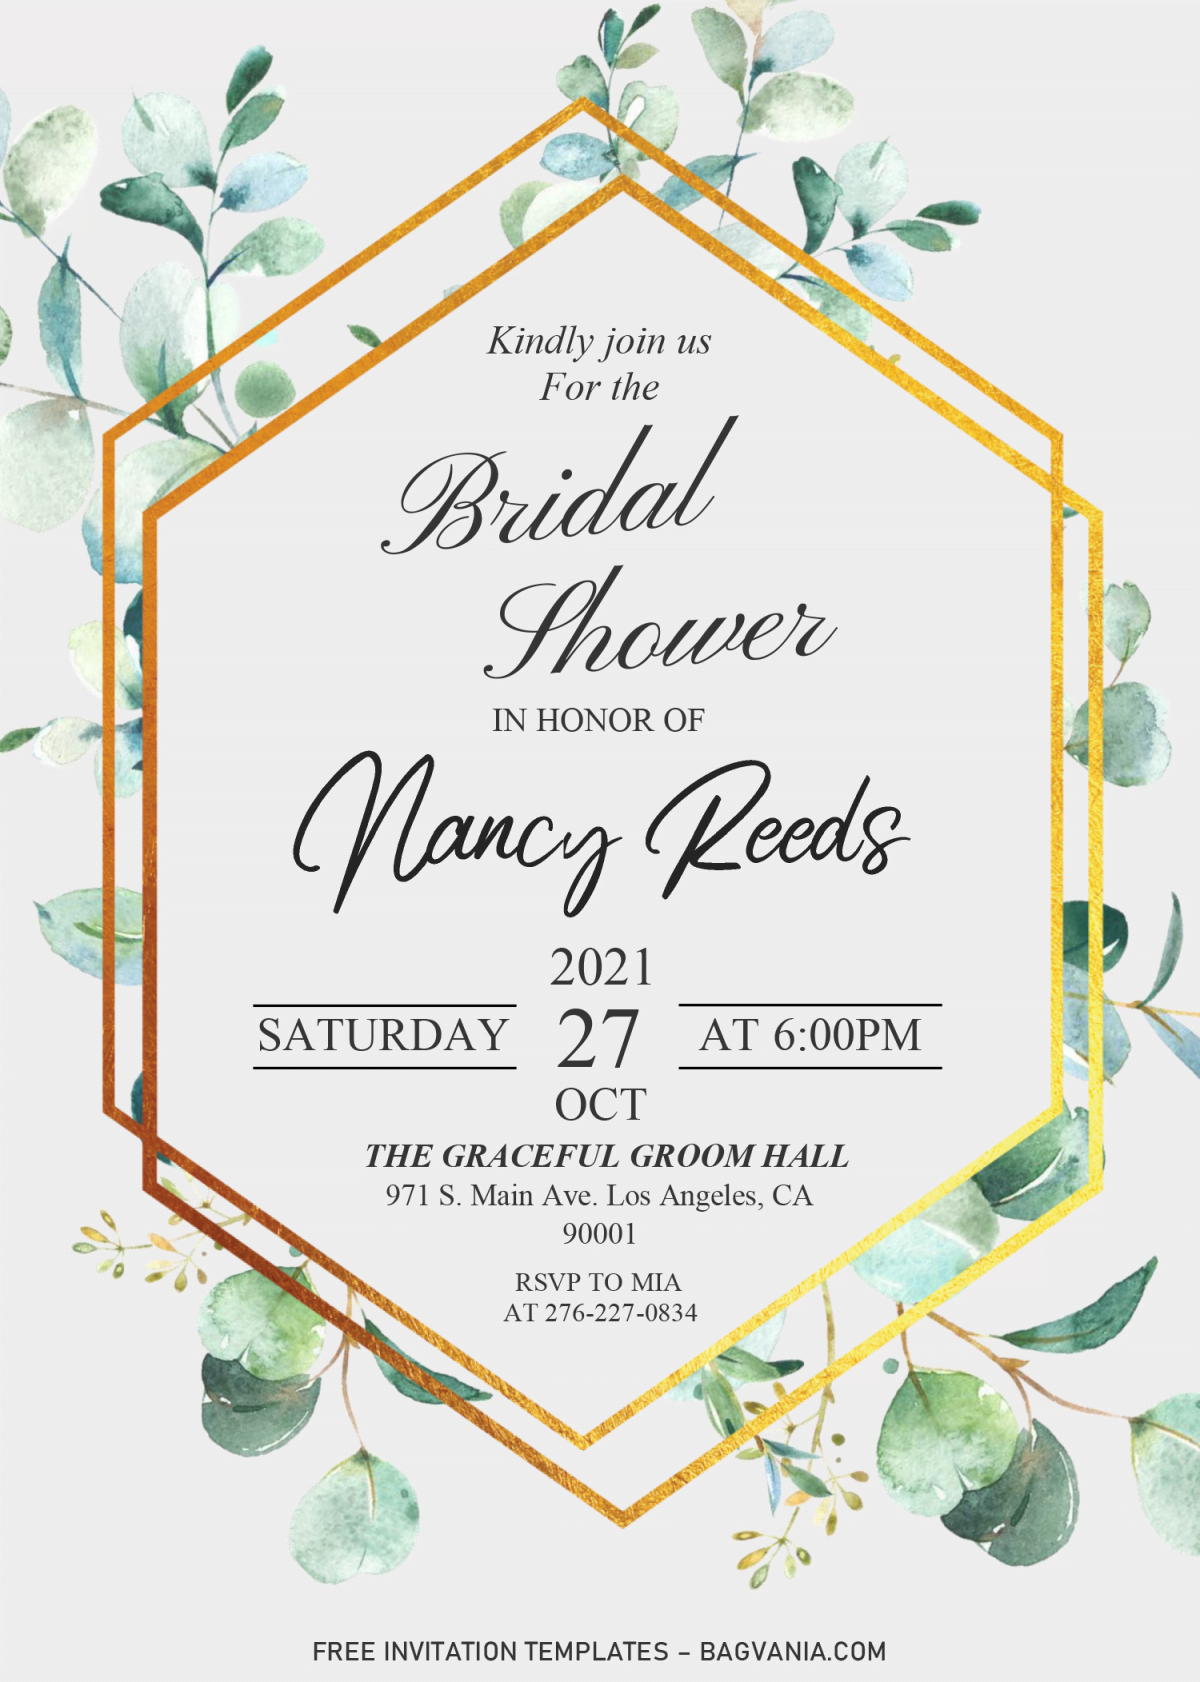 Modern Floral Invitation Templates - Editable .DOCX and has white background